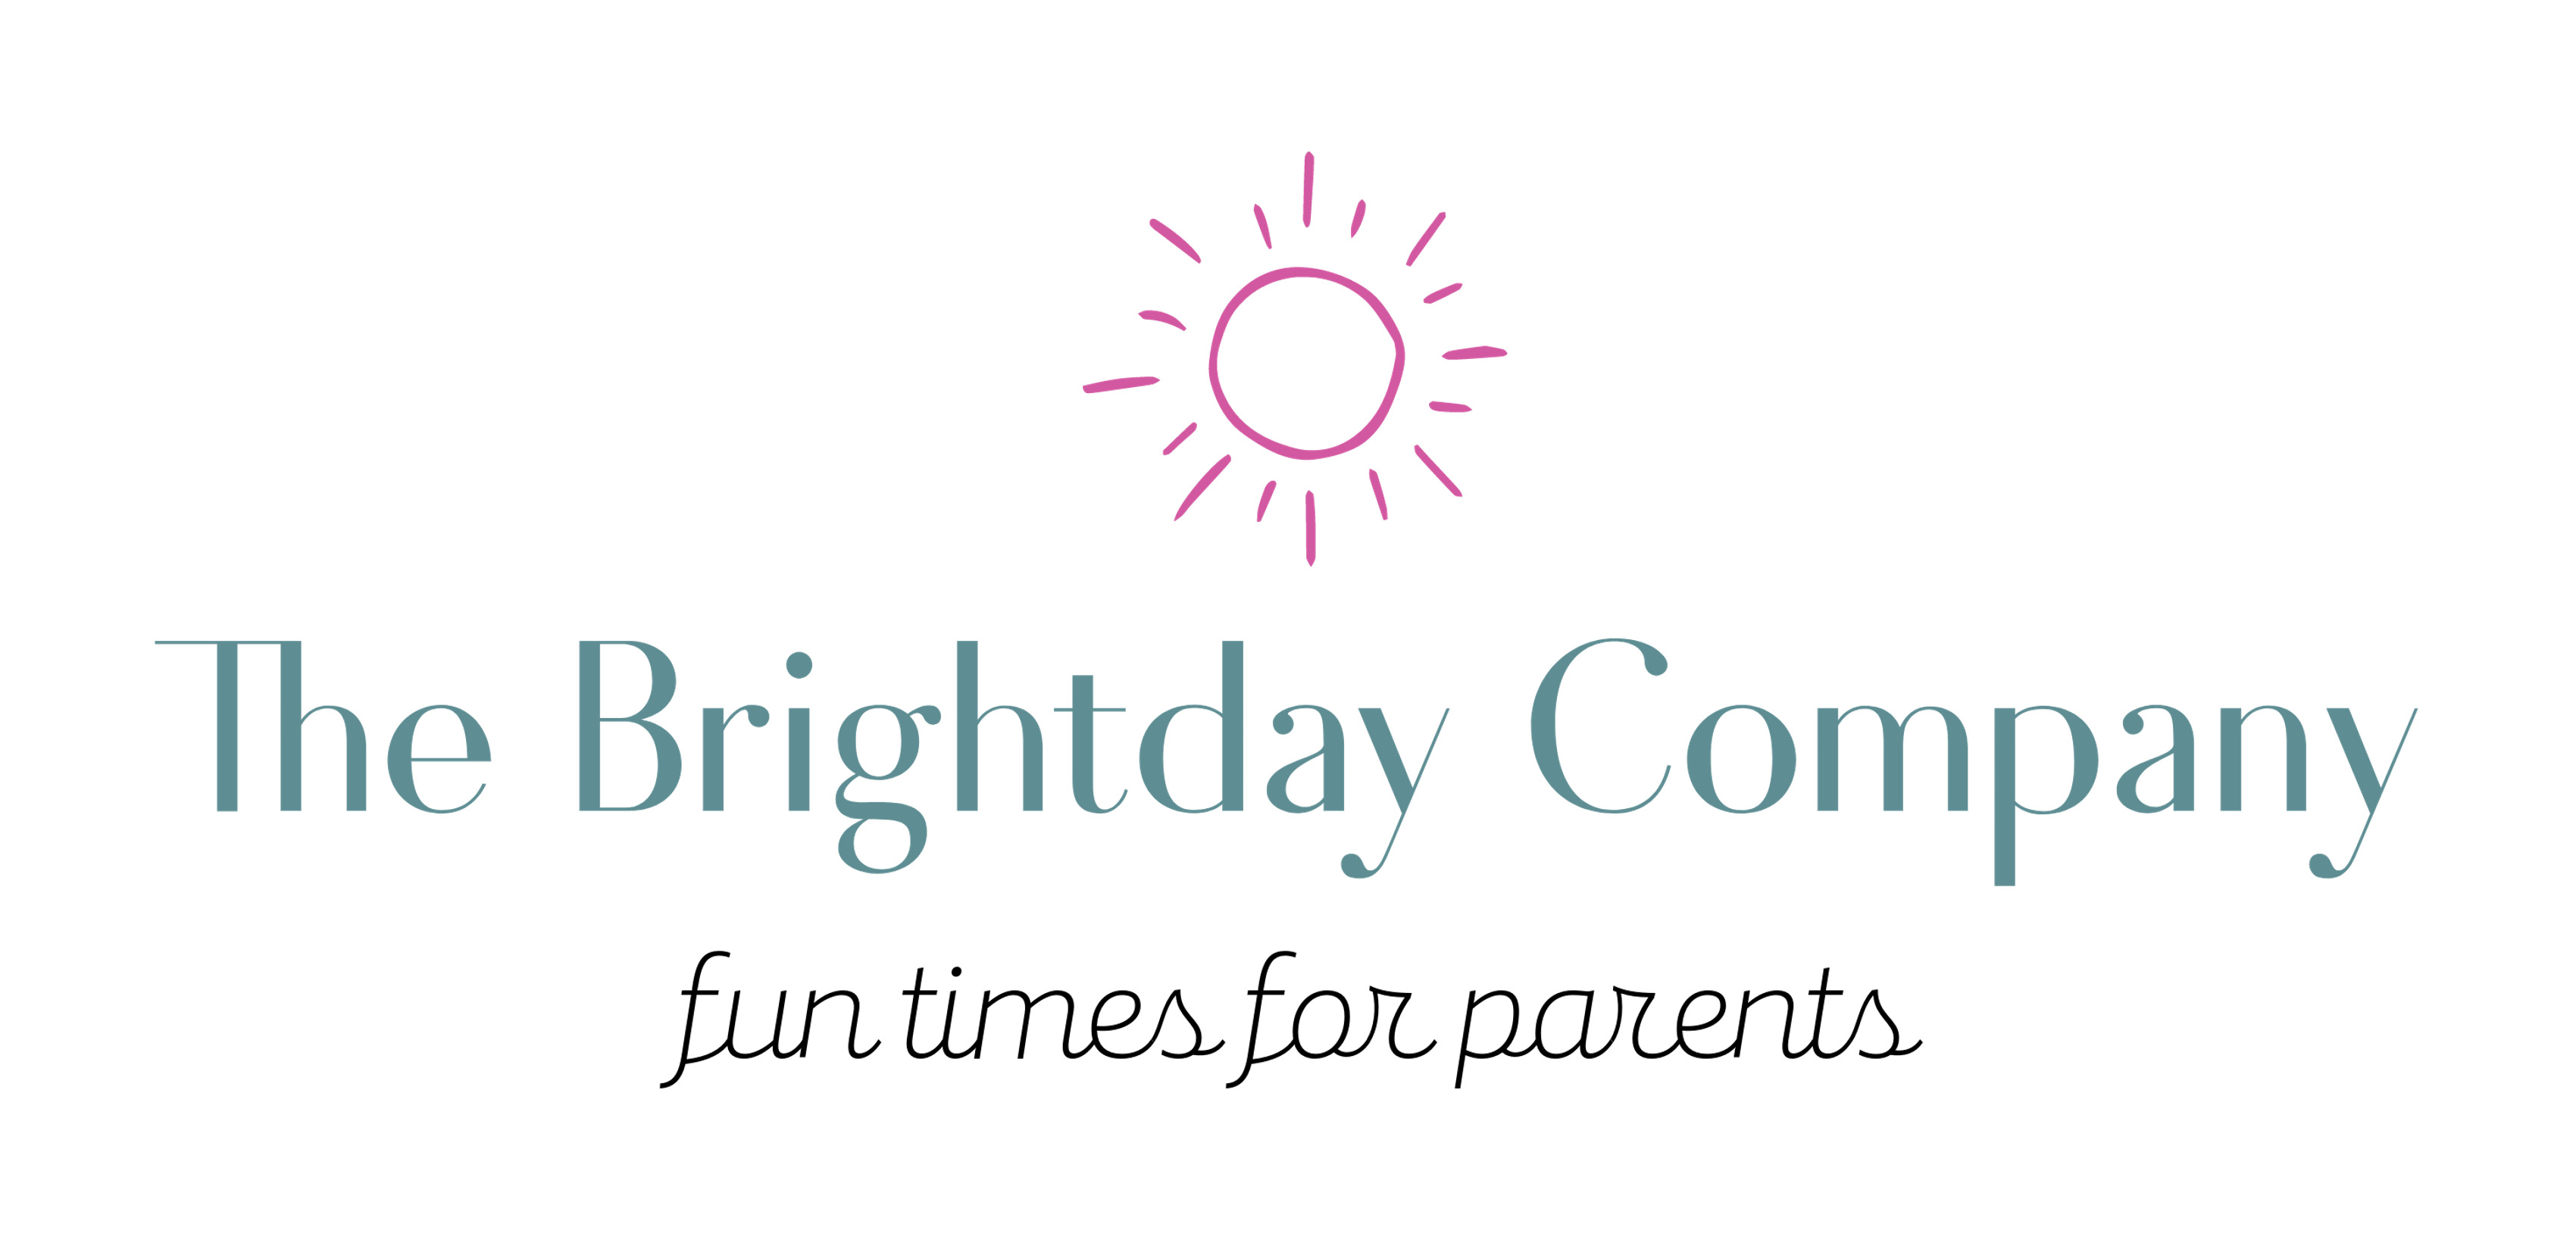 The Brightday Company (A mum in Clapham)'s logo